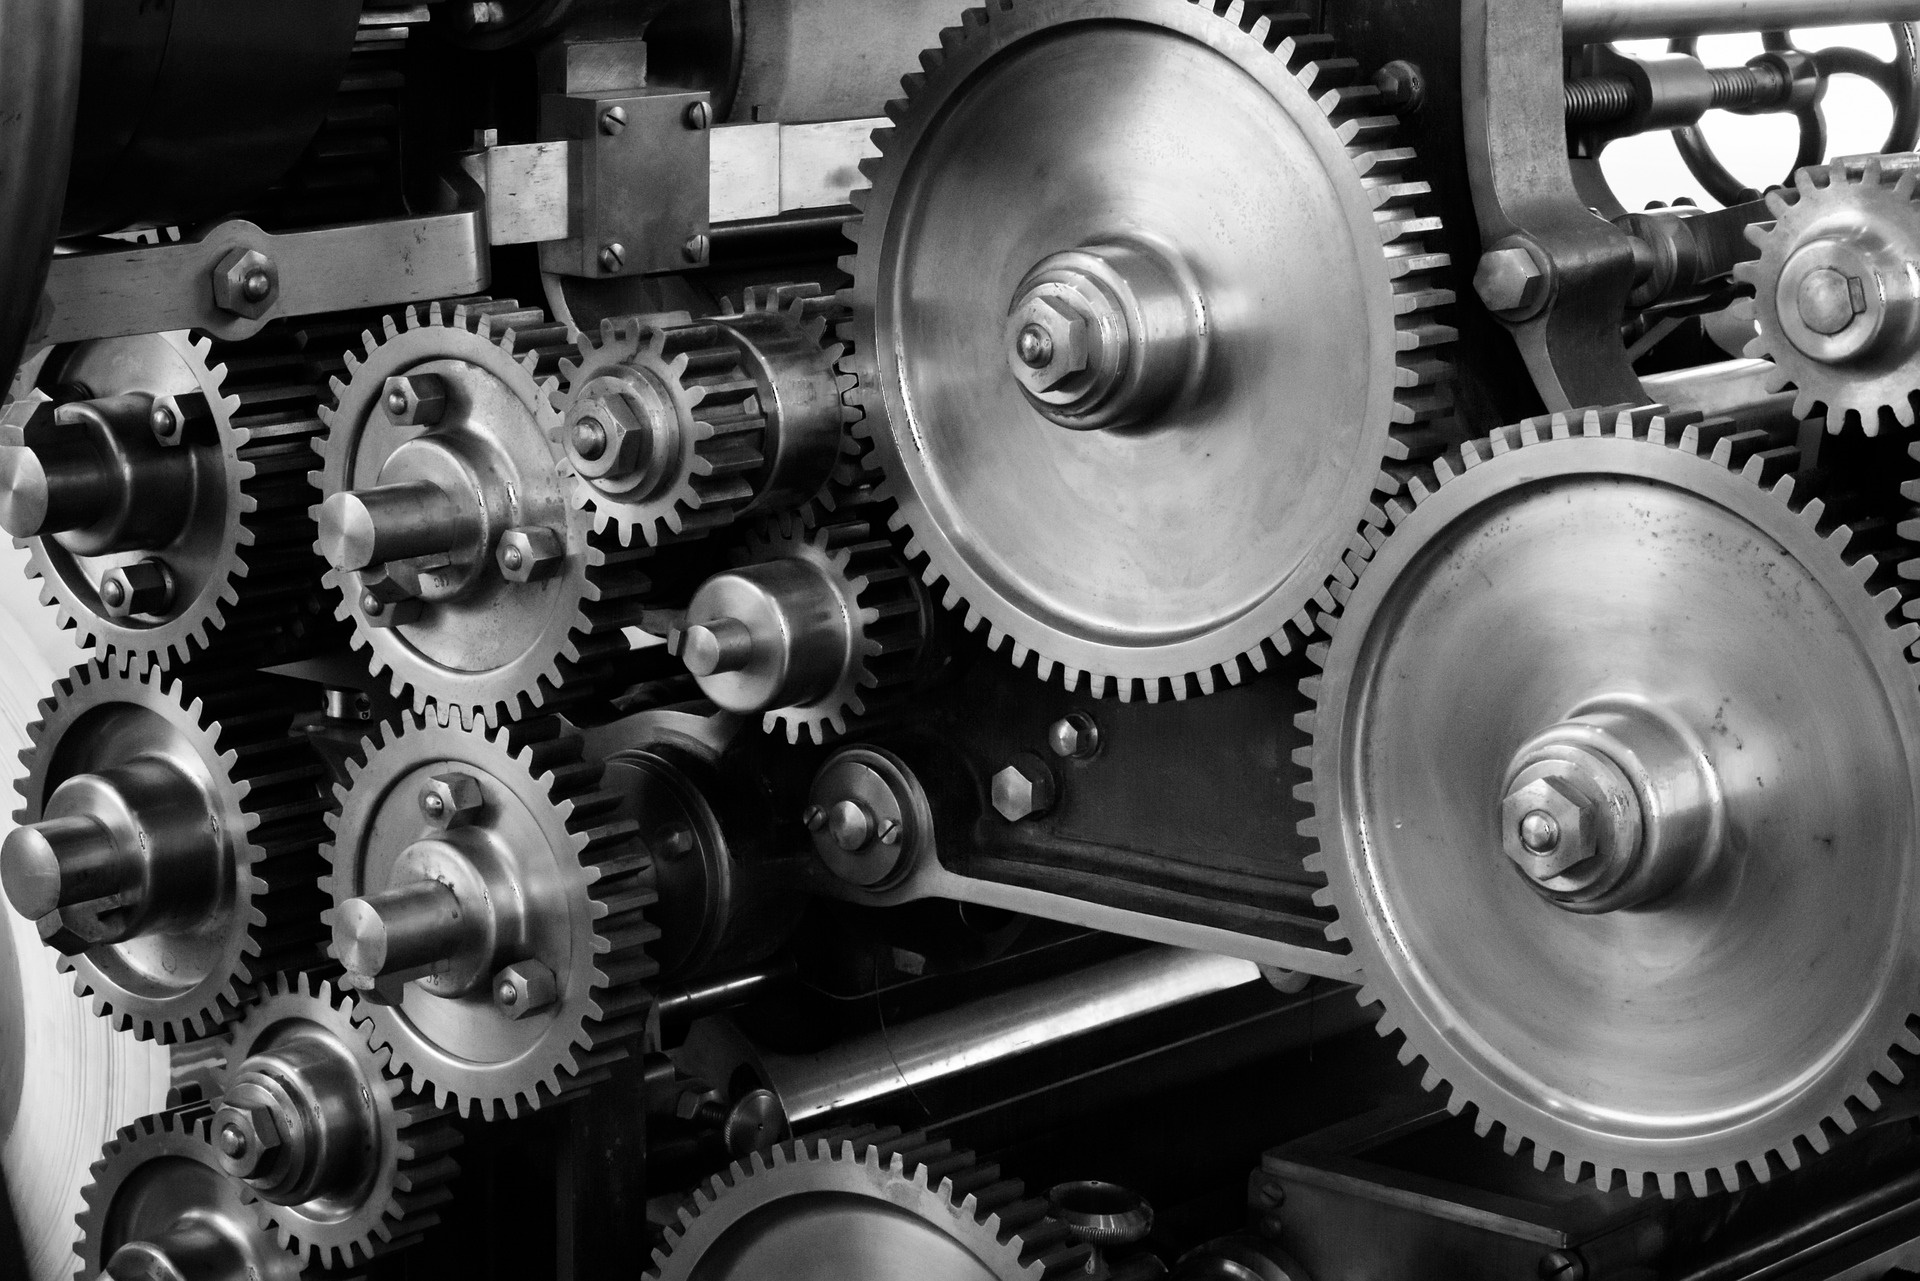 A picture of some cogs